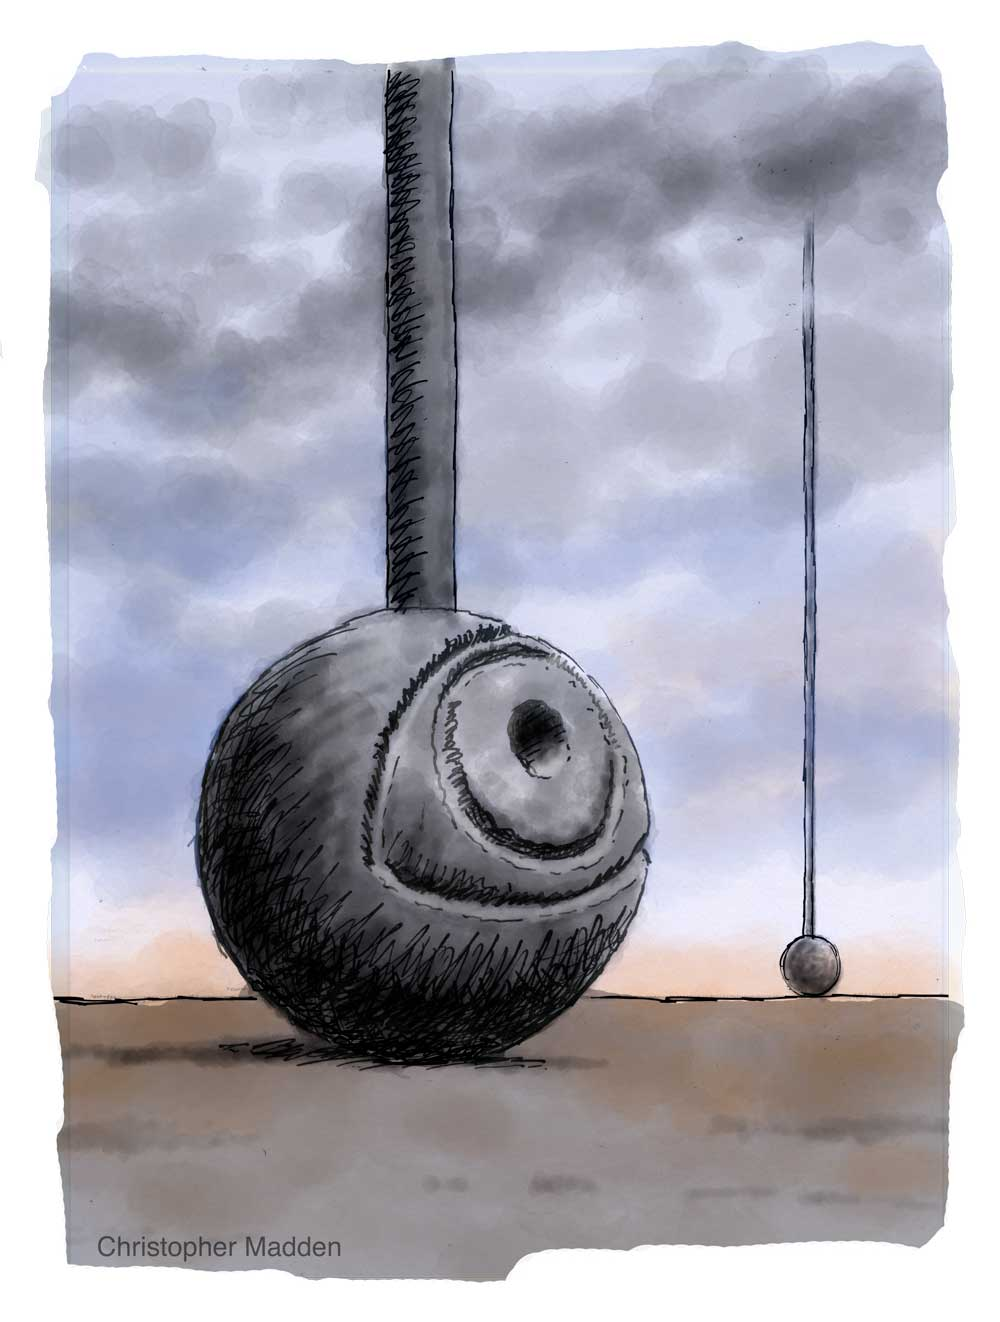 surrealism in contemporary art - giant stone eye